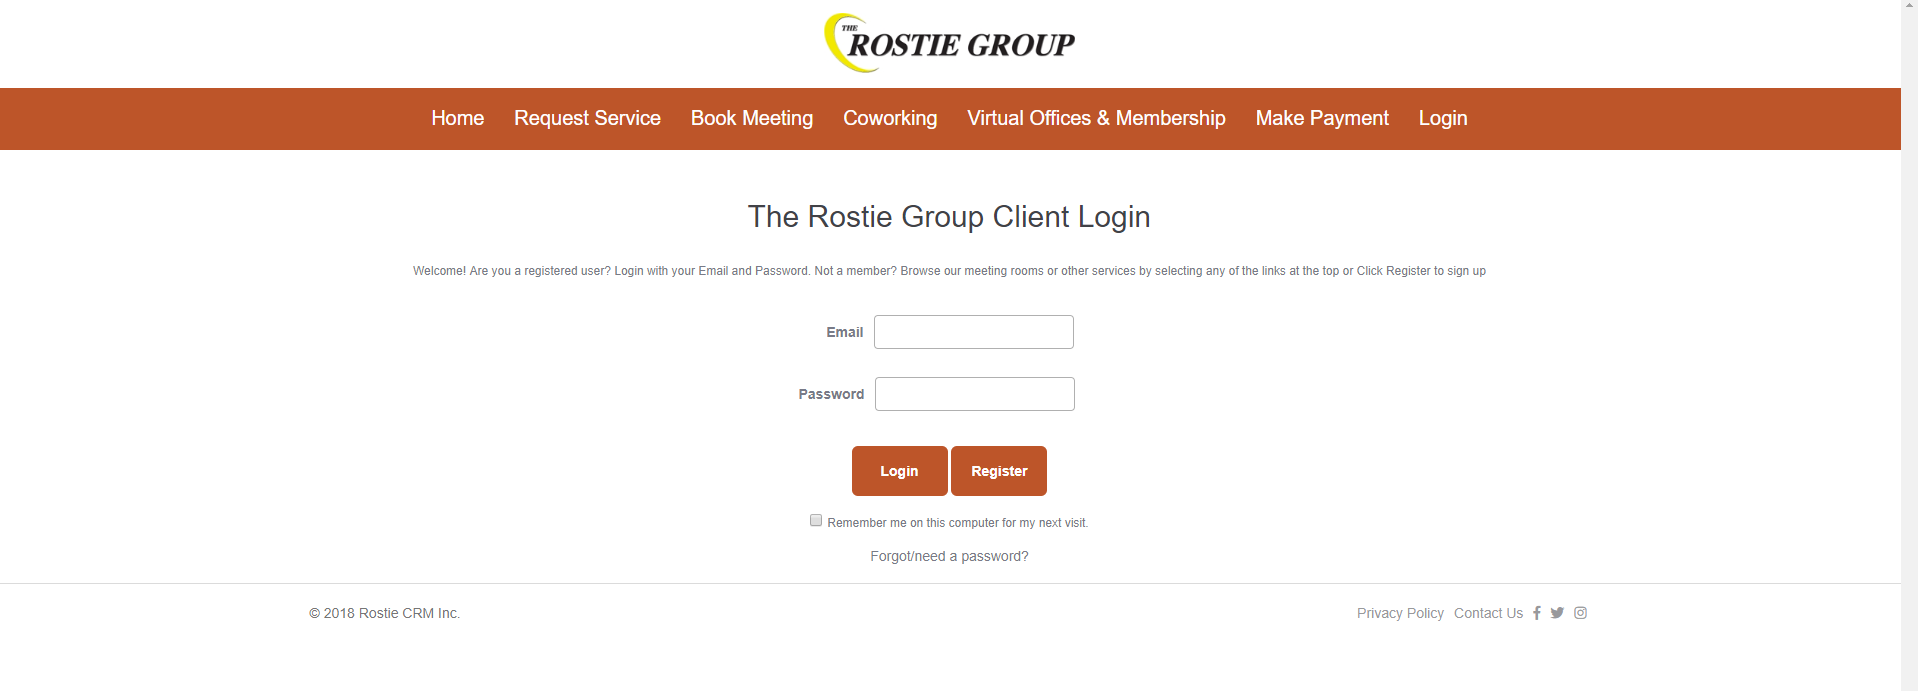 Rostie Group Online Booking Portal Advertisement